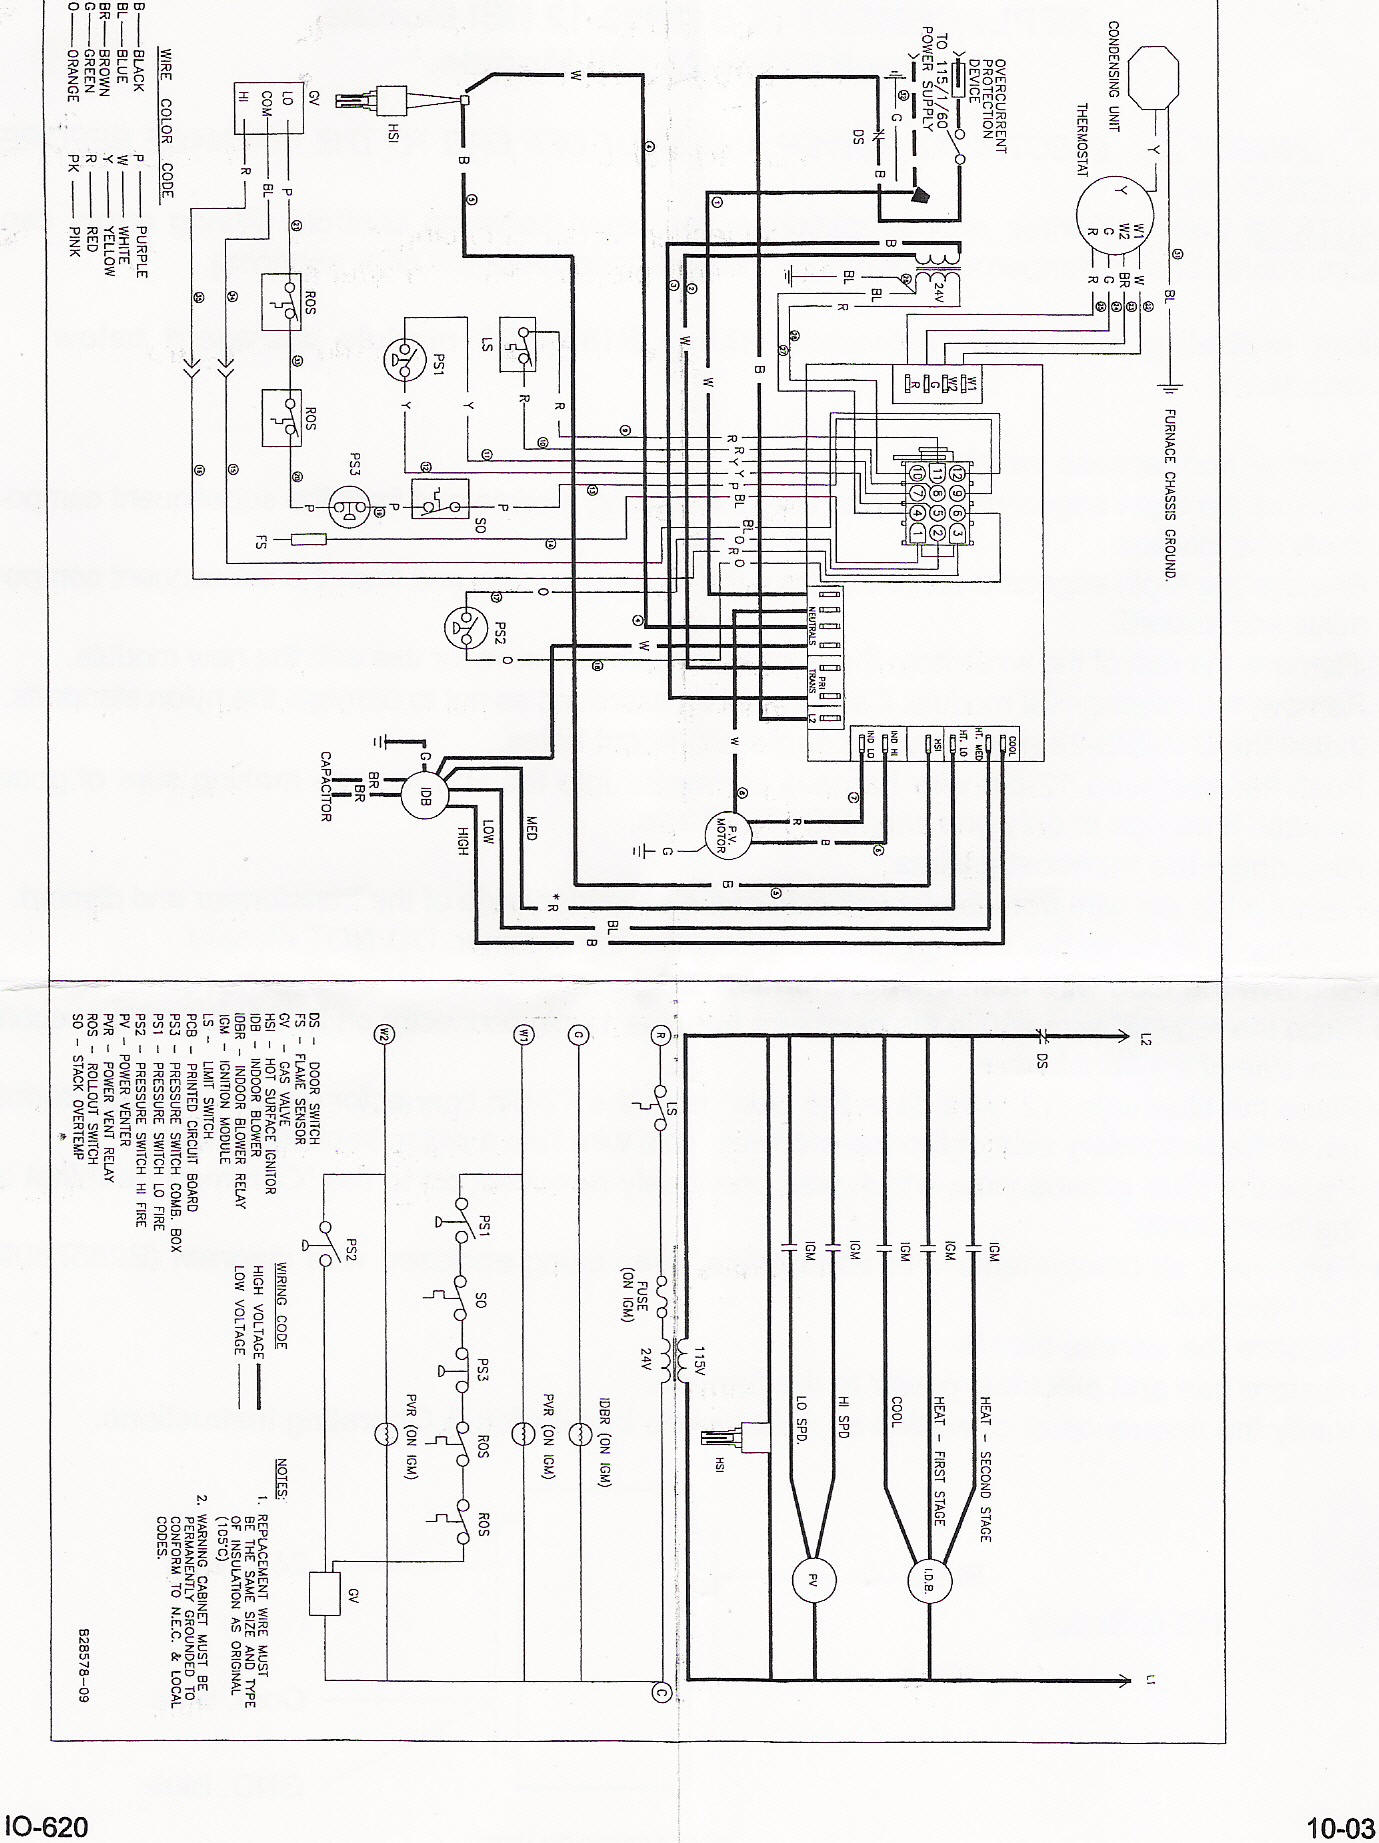 Ford E350 Fuse Diagram Michael Cass 547 Imagine Classy Need Box 1 additionally S8610u Wiring Diagram additionally Need Help Grizzly 660 Yamaha Grizzly Atv Forum further Furnace Gas Valve Wiring Diagram likewise Snapper Wiring Schematic. on honeywell s8610u wiring diagram